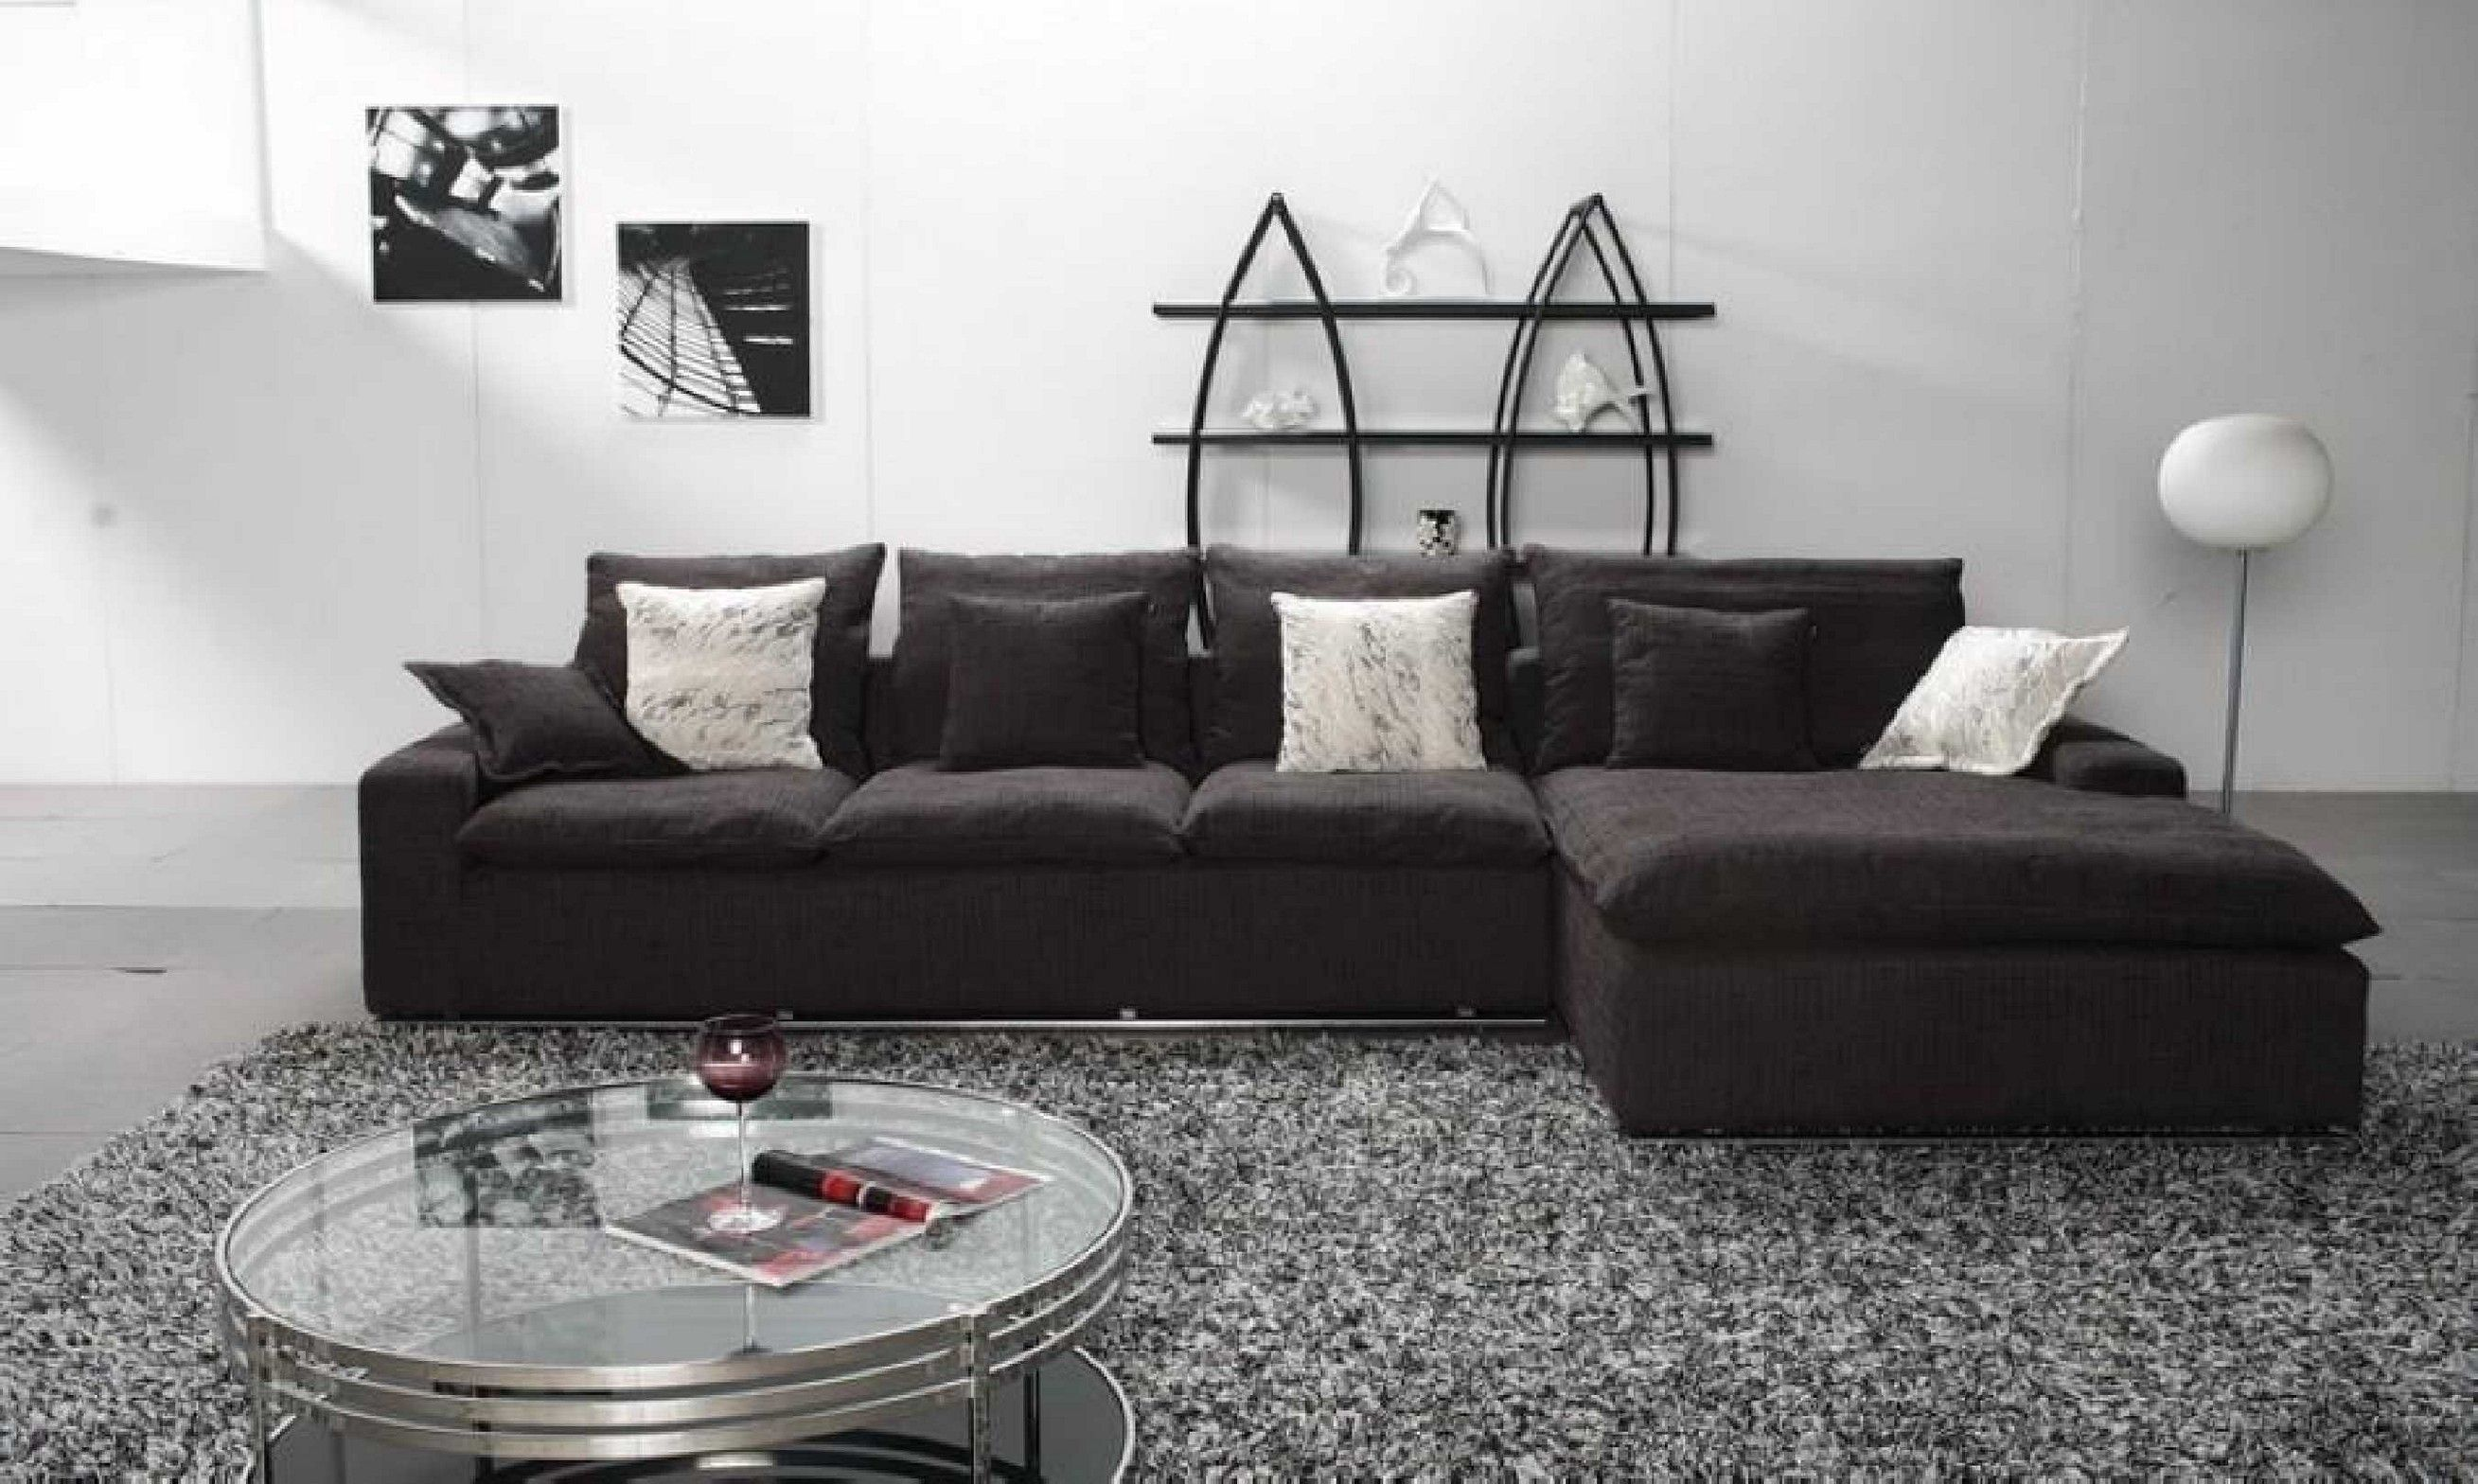 Most Comfortable L Shaped Couch Ever Wish List For House Sofa